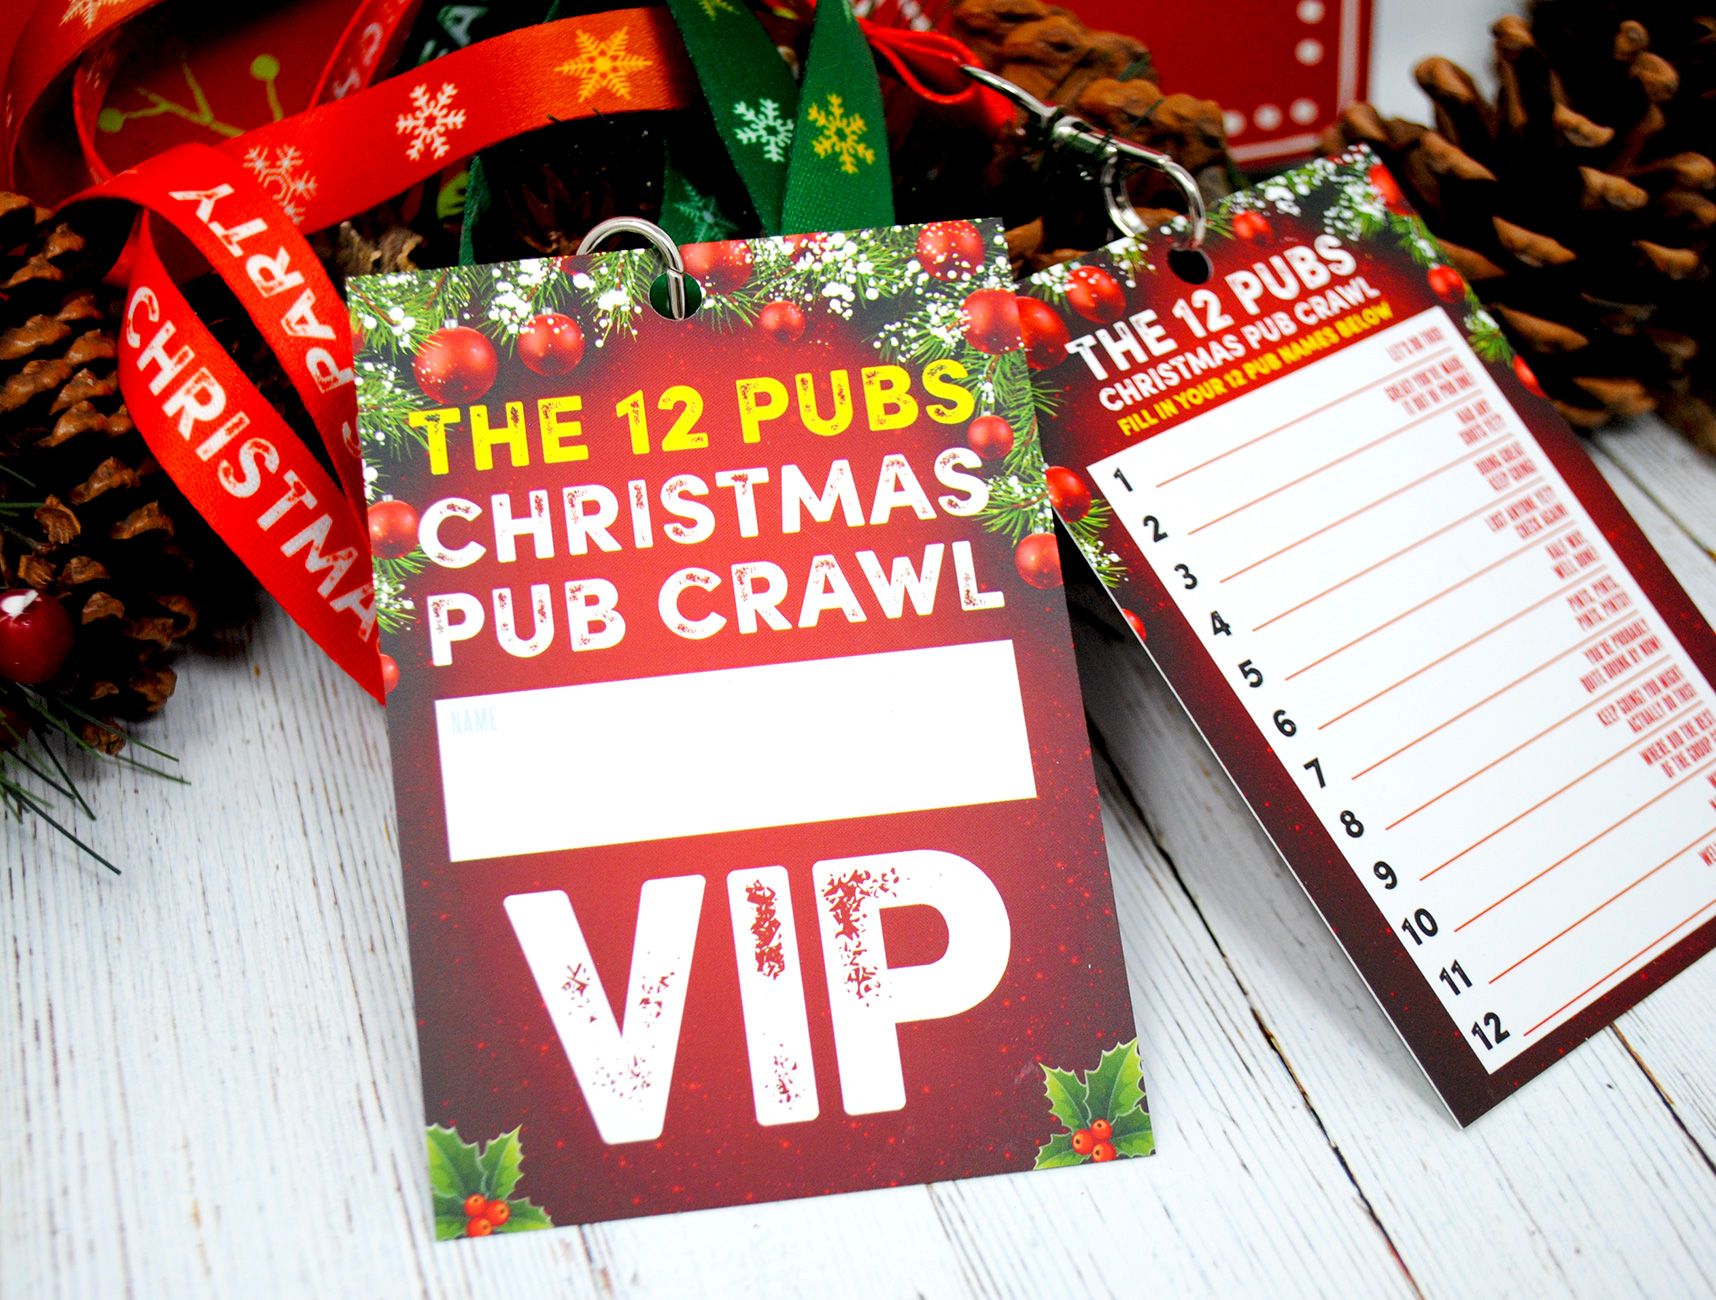 the 12 pubs christmas pub crawl list vip lanyards